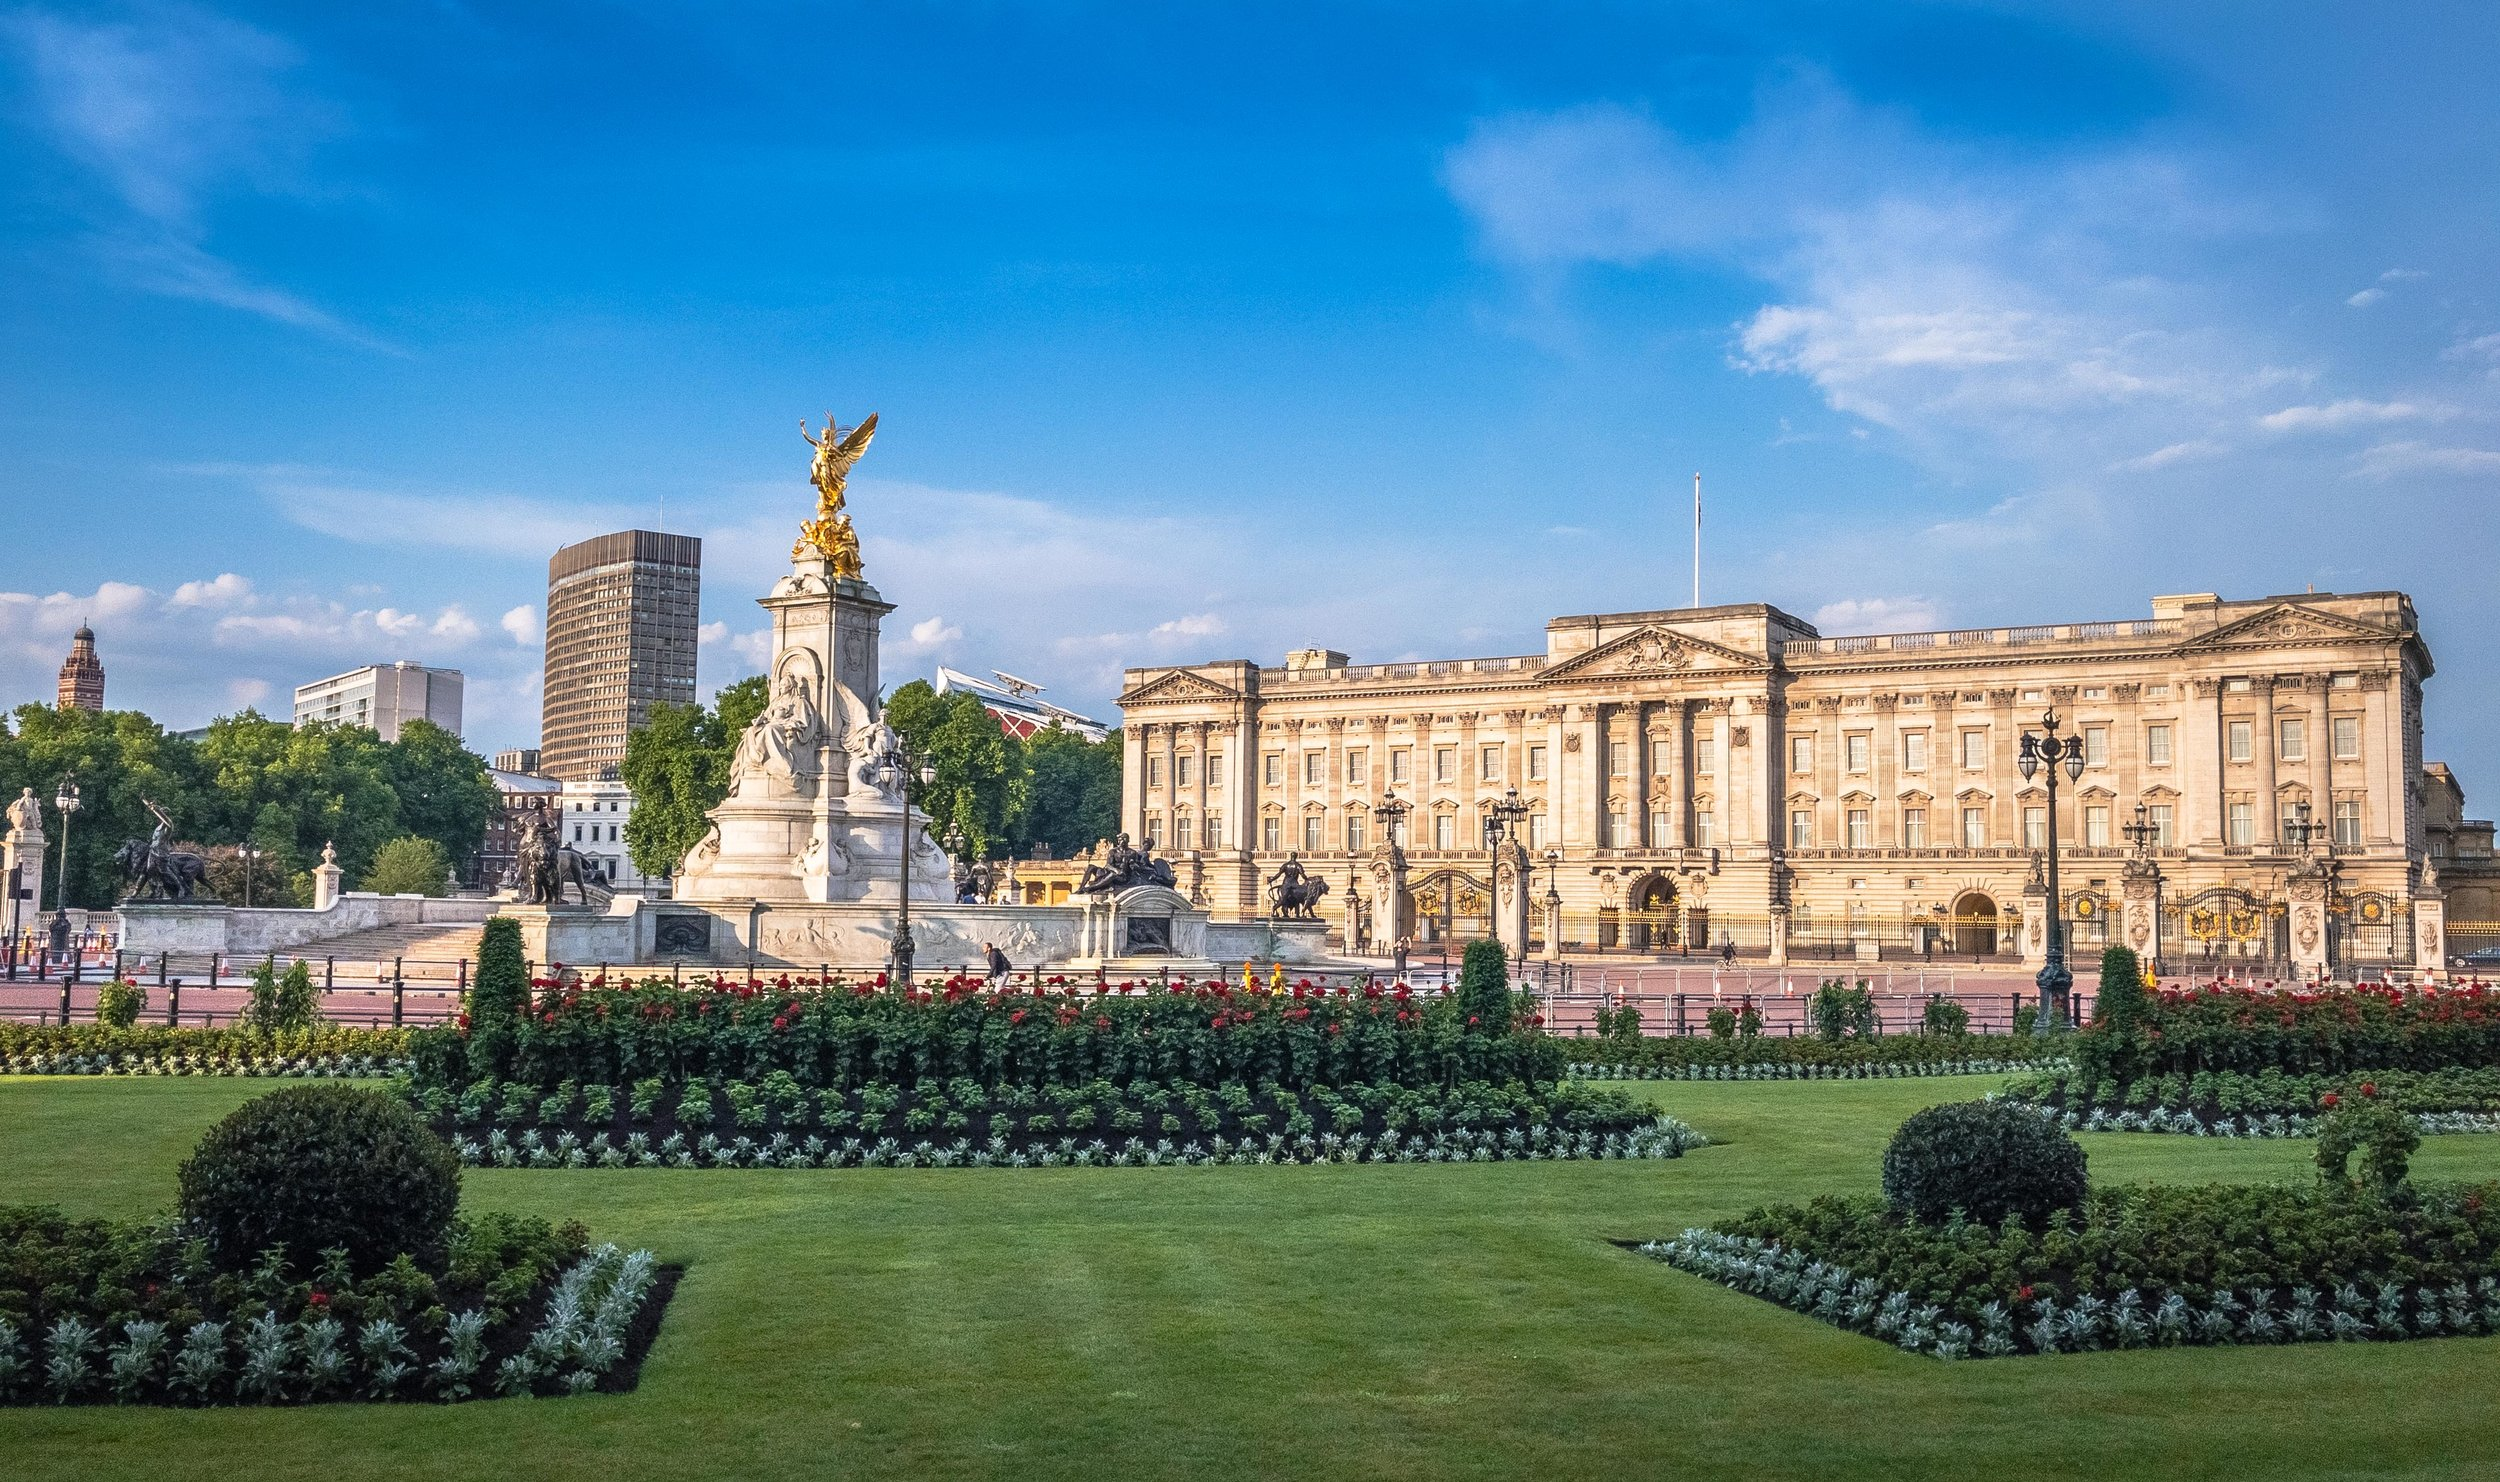 Early Morning at Buckingham Palace, 2017